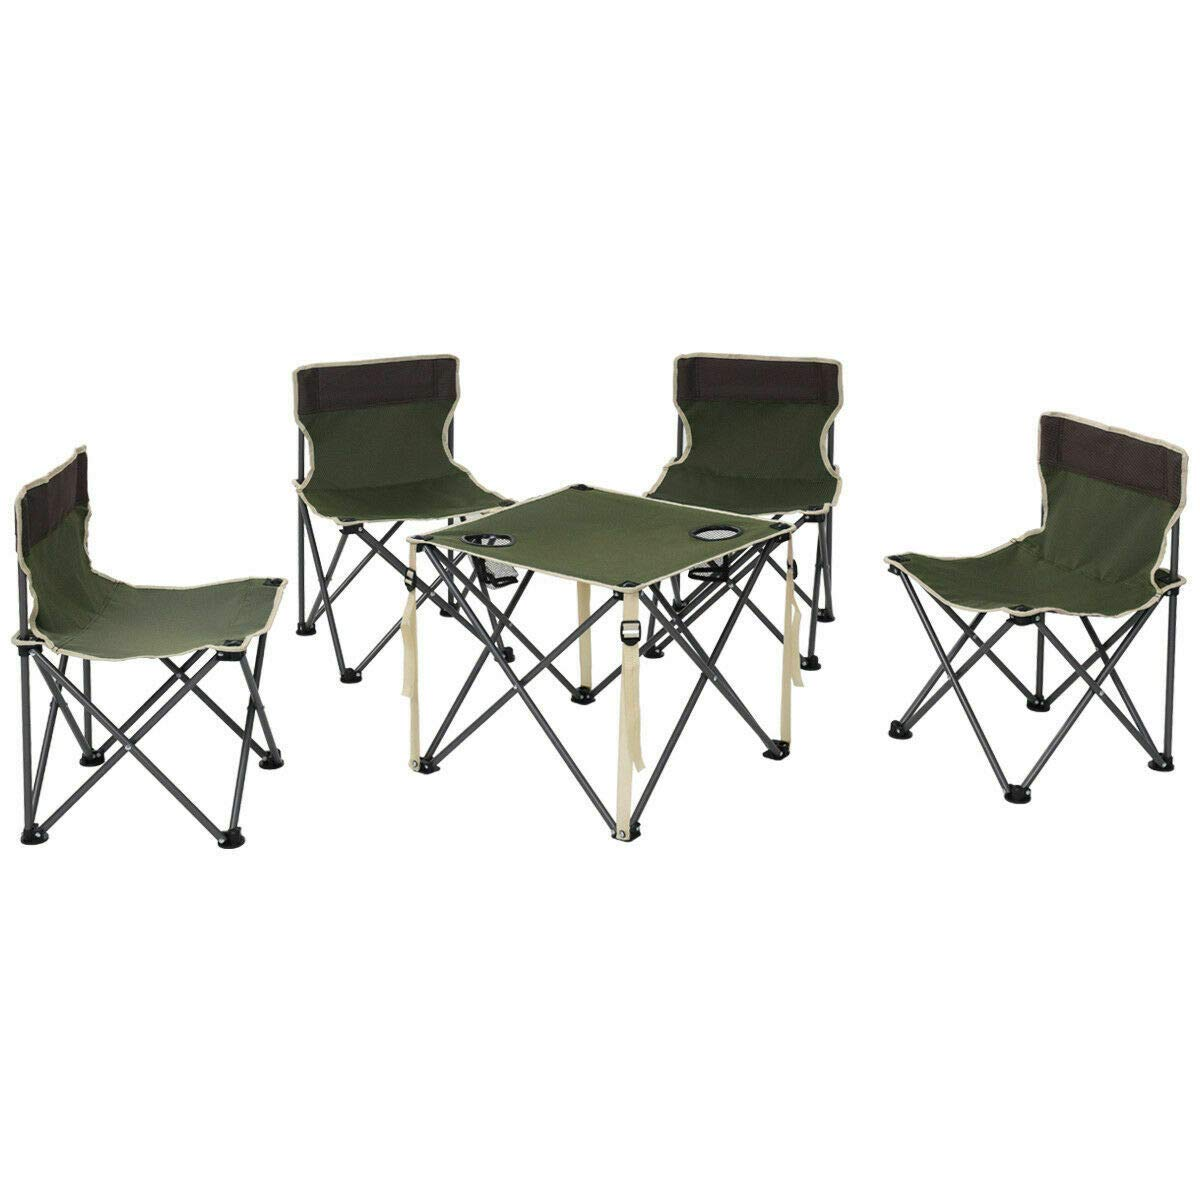 ANA Store Enjoy Barbecue Party Curl Stand Iron Stell Frame Green Oxford Portable Folding Table Chairs Set Inside Outside Camp Beach Picnic with Carrying Bag by ANA Store (Image #3)